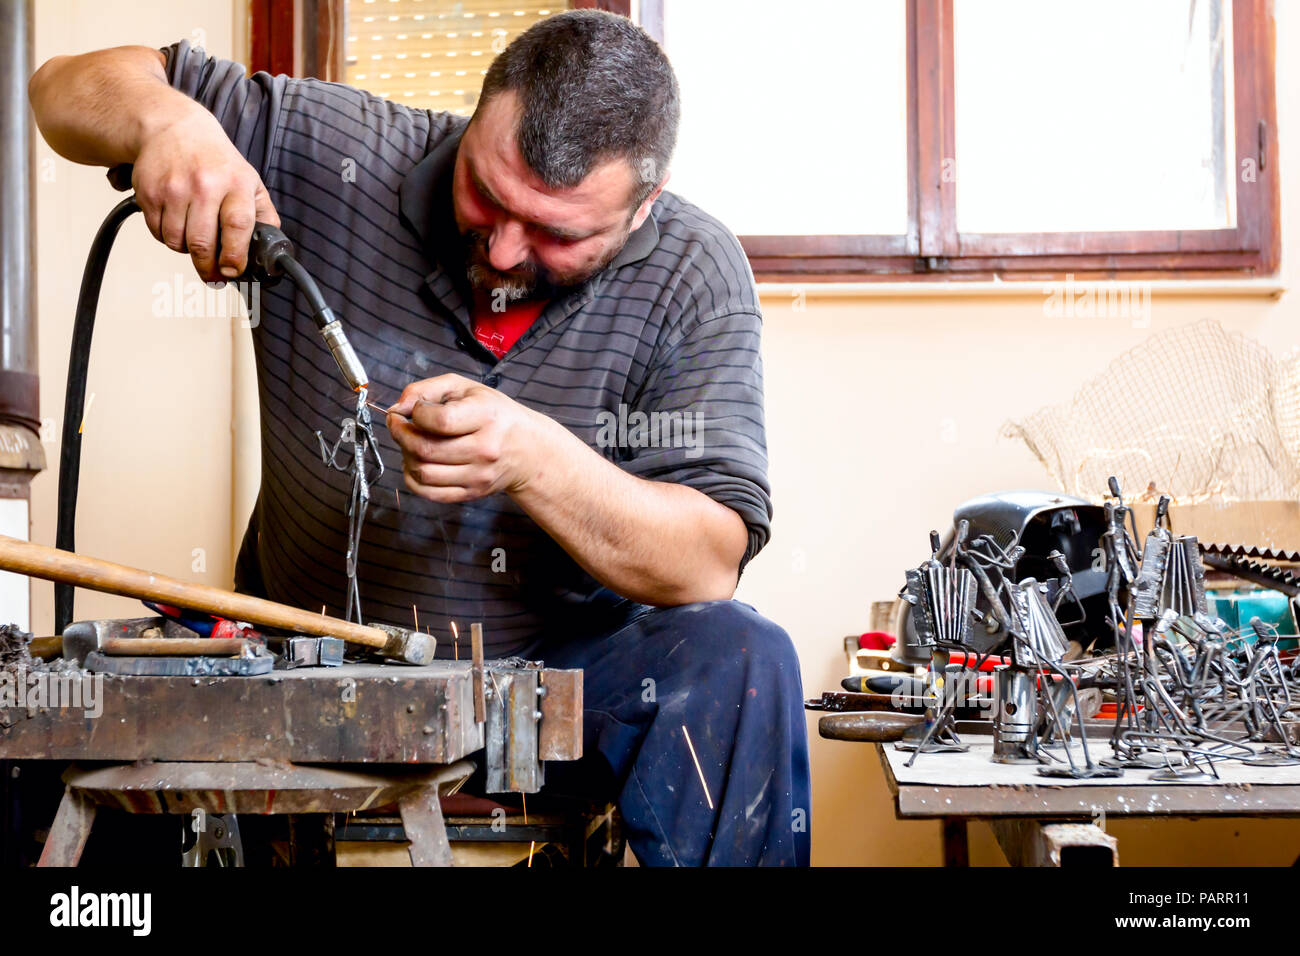 Sculptor is using arc welding to assembly metal sculpture without proper protection, barehanded. Stock Photo